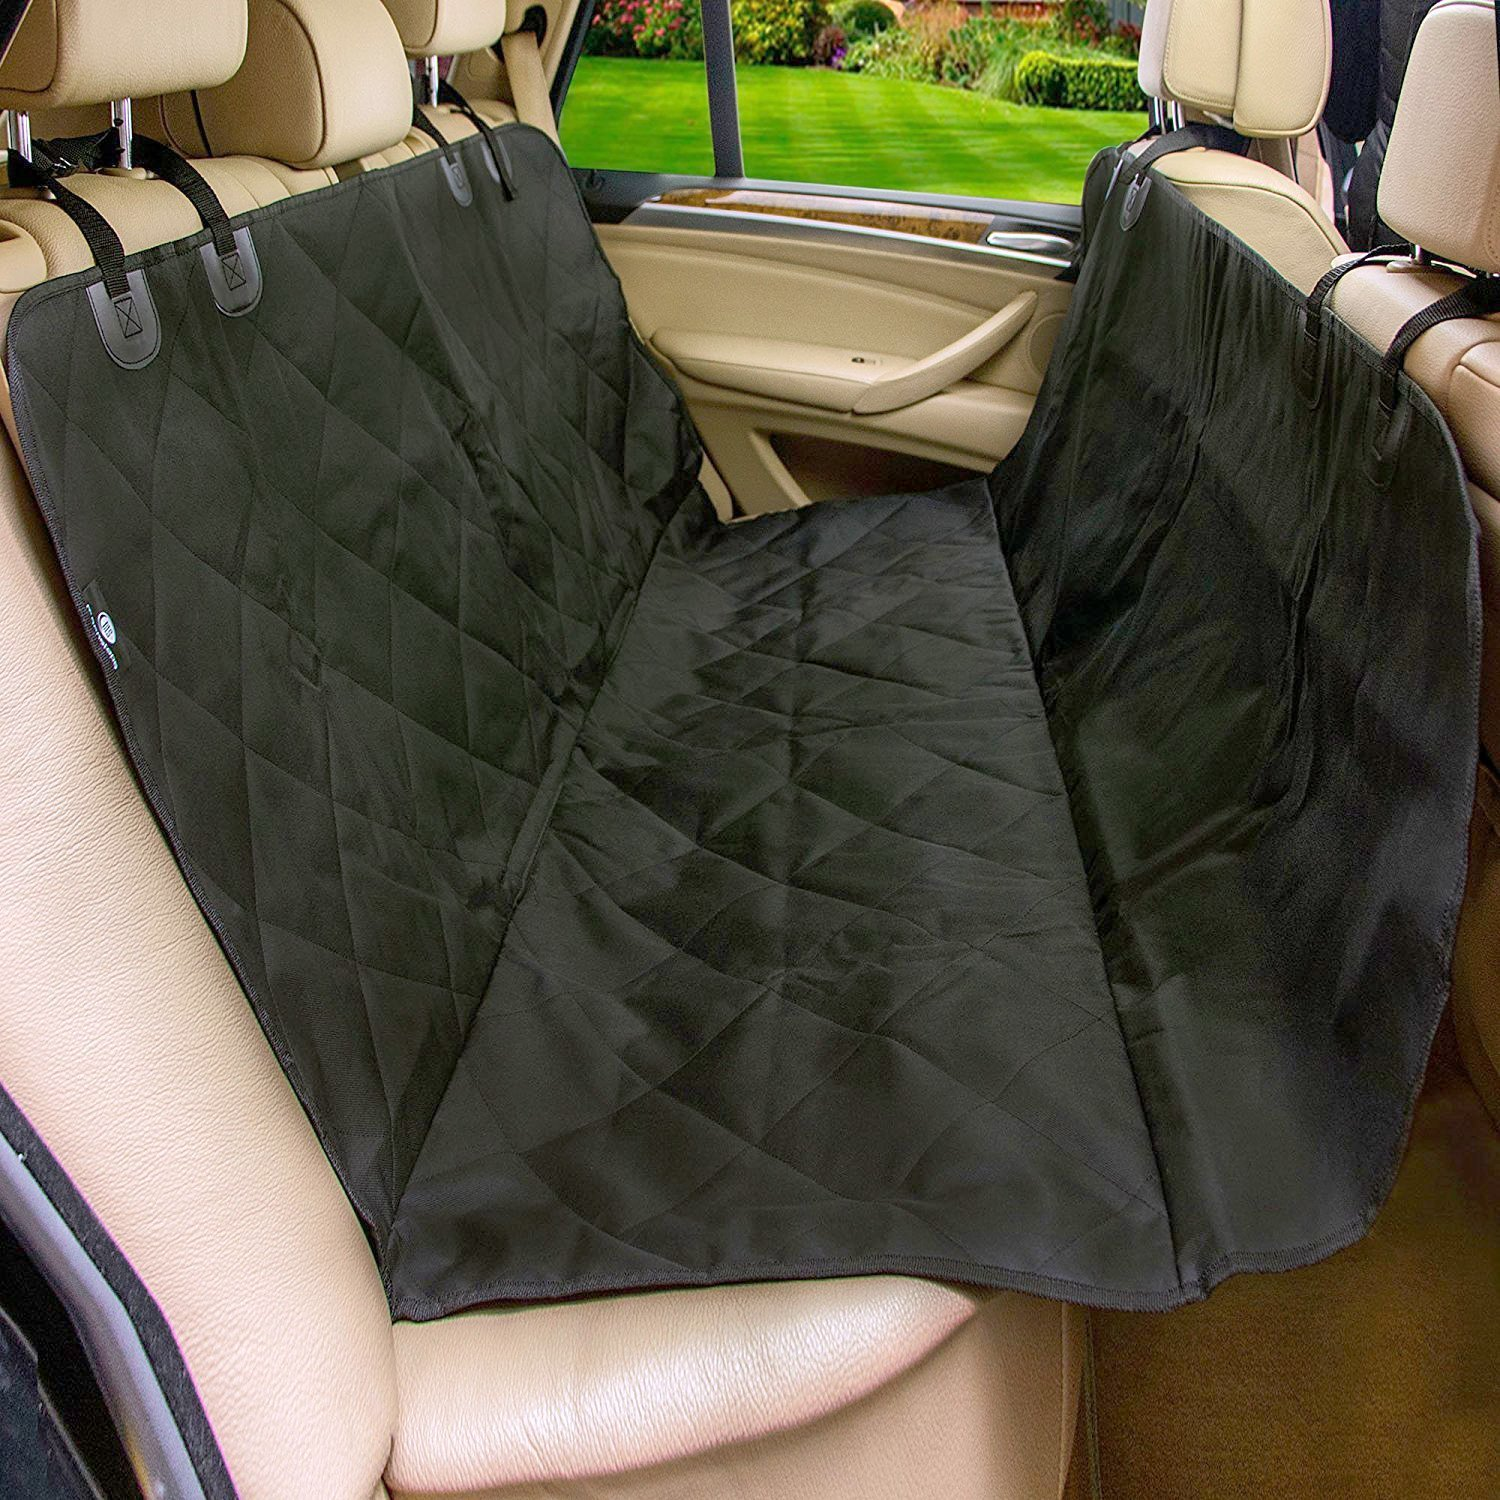 Amazon com pet car seat cover for cars moonsteps waterproof dog hammock seat cover for dogs cars trucks suv s vehicles nonslip backing black pet